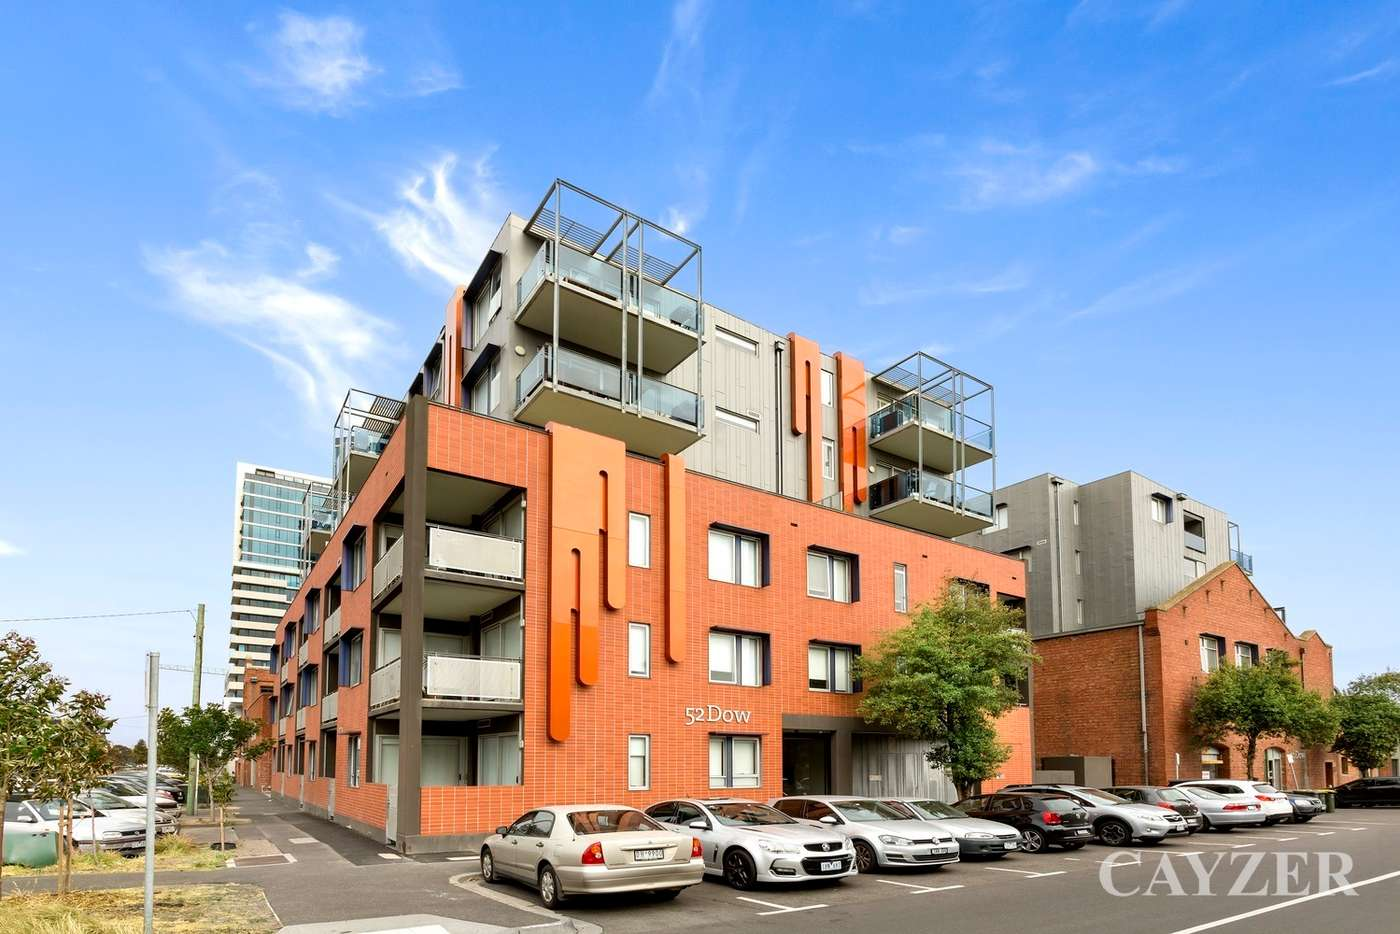 Main view of Homely apartment listing, 304/52 Dow Street, Port Melbourne VIC 3207